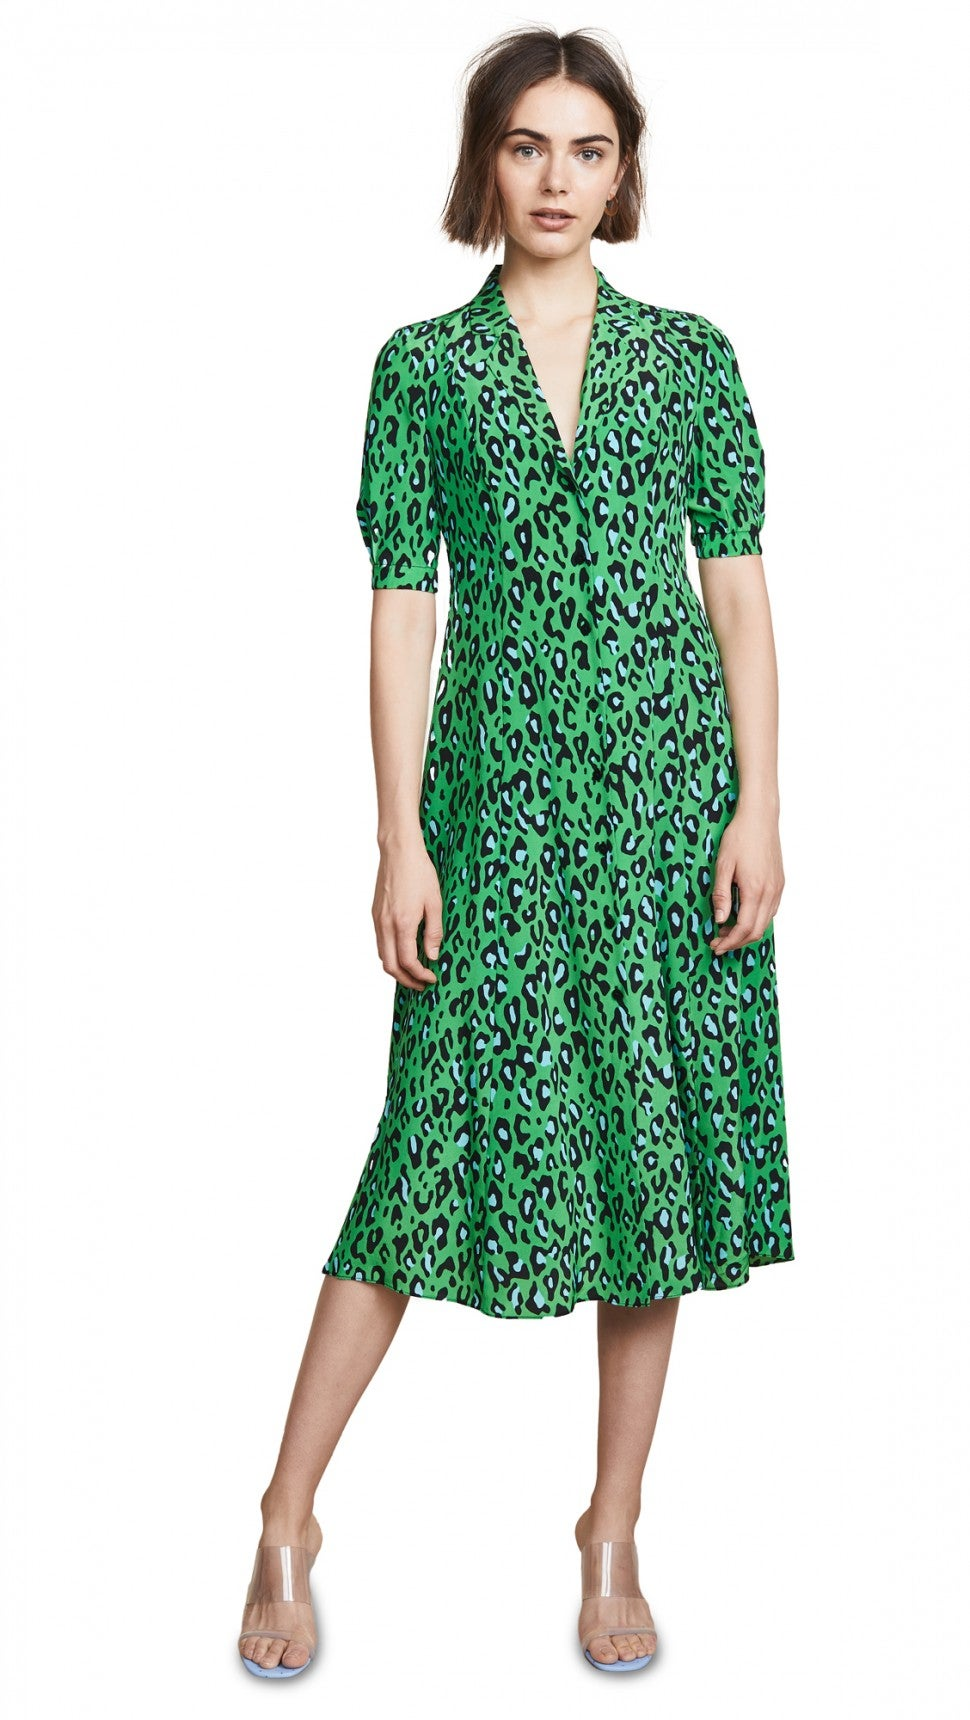 Diane von Furstenberg green leopard print dress